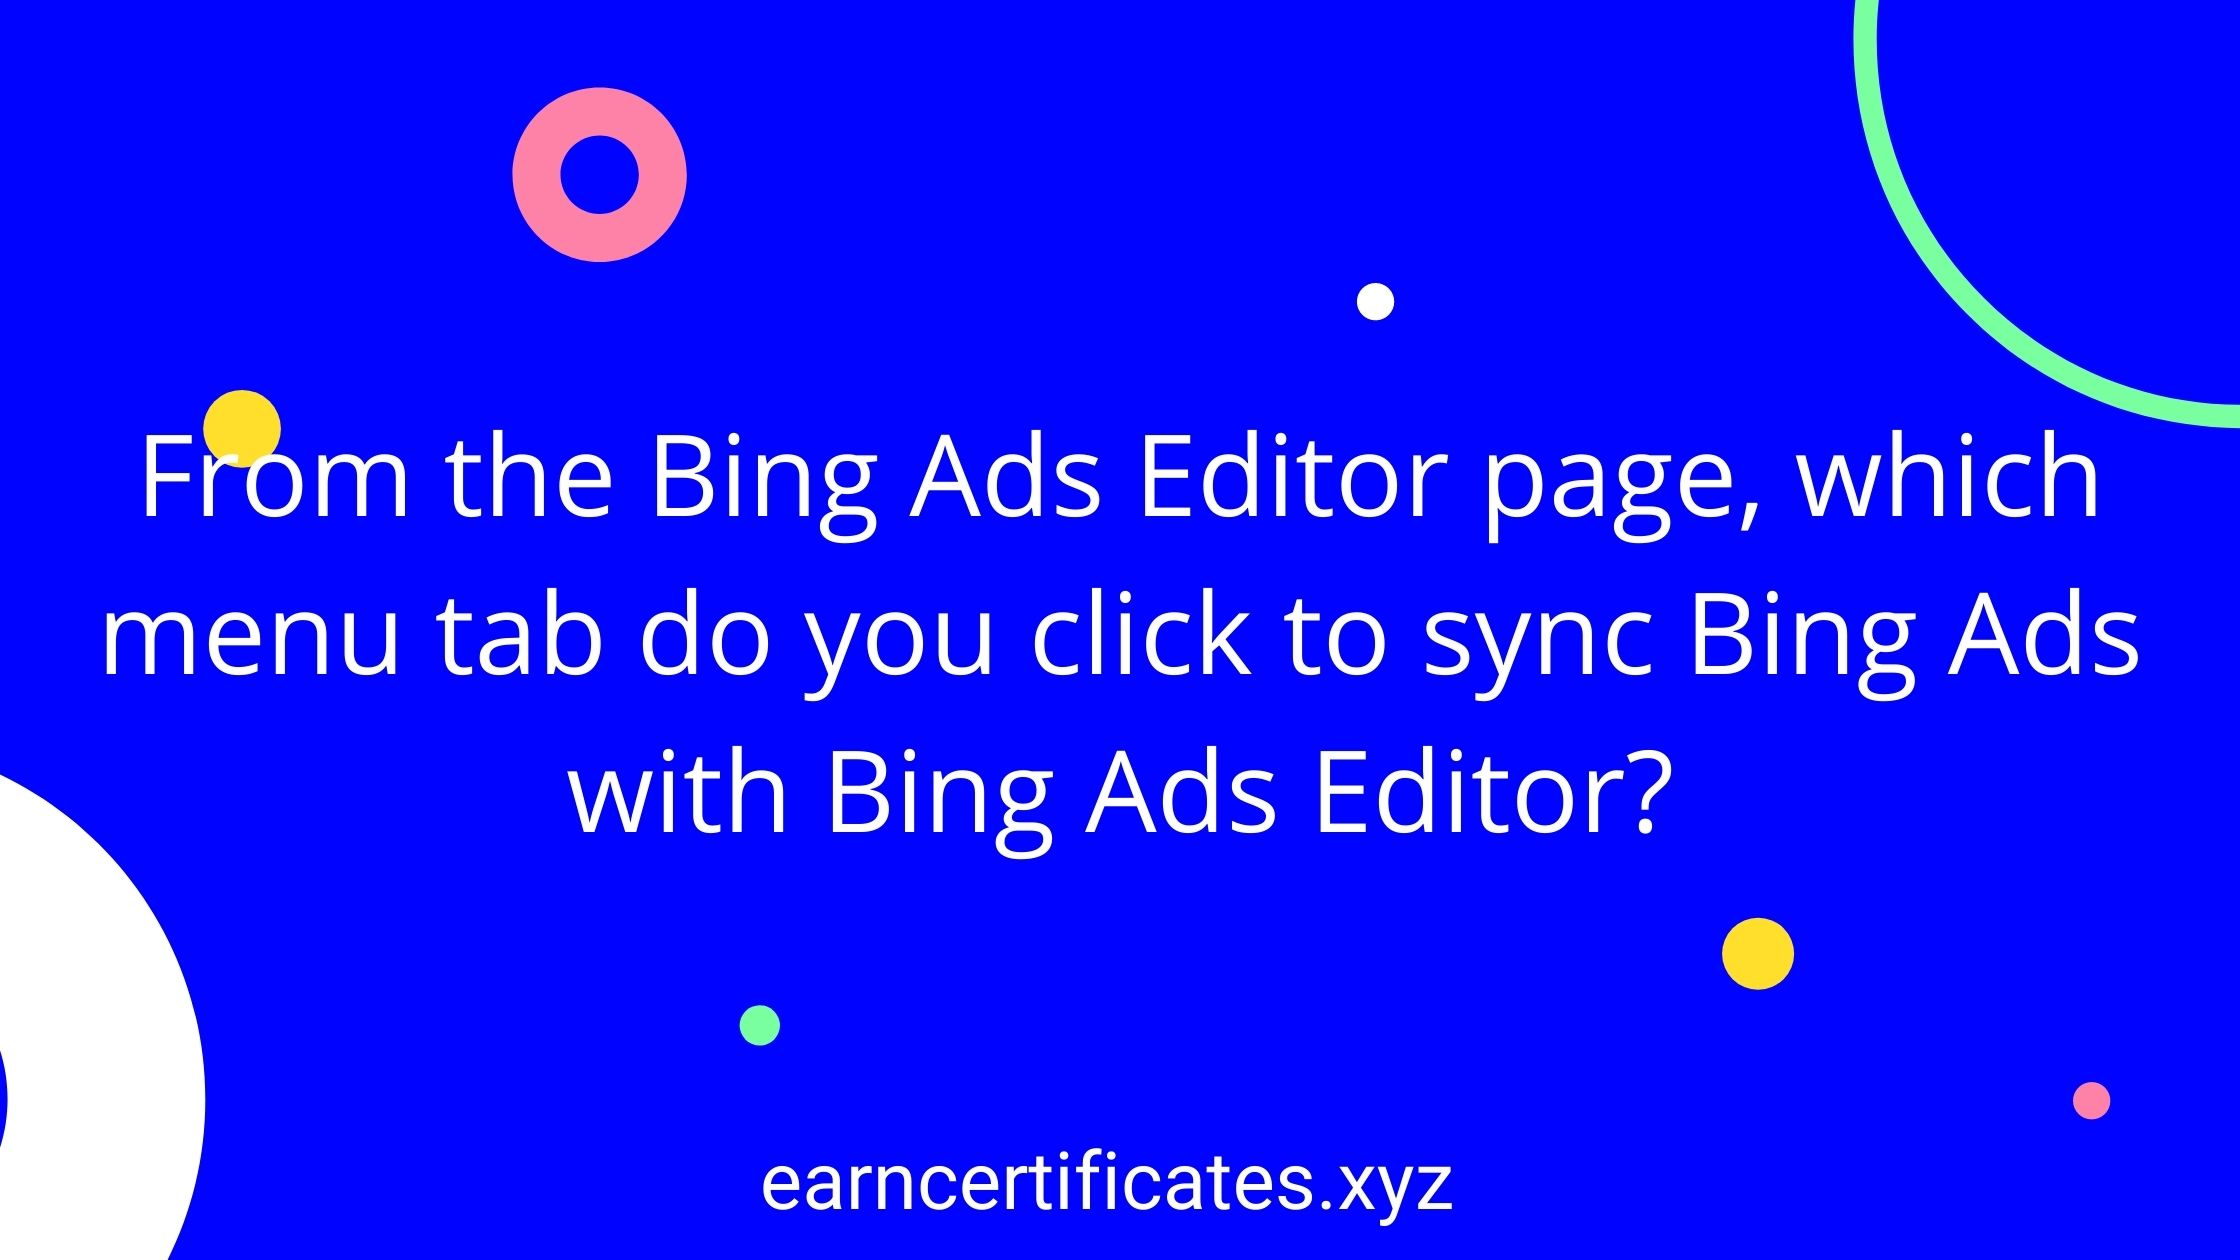 From the Bing Ads Editor page, which menu tab do you click to sync Bing Ads with Bing Ads Editor?